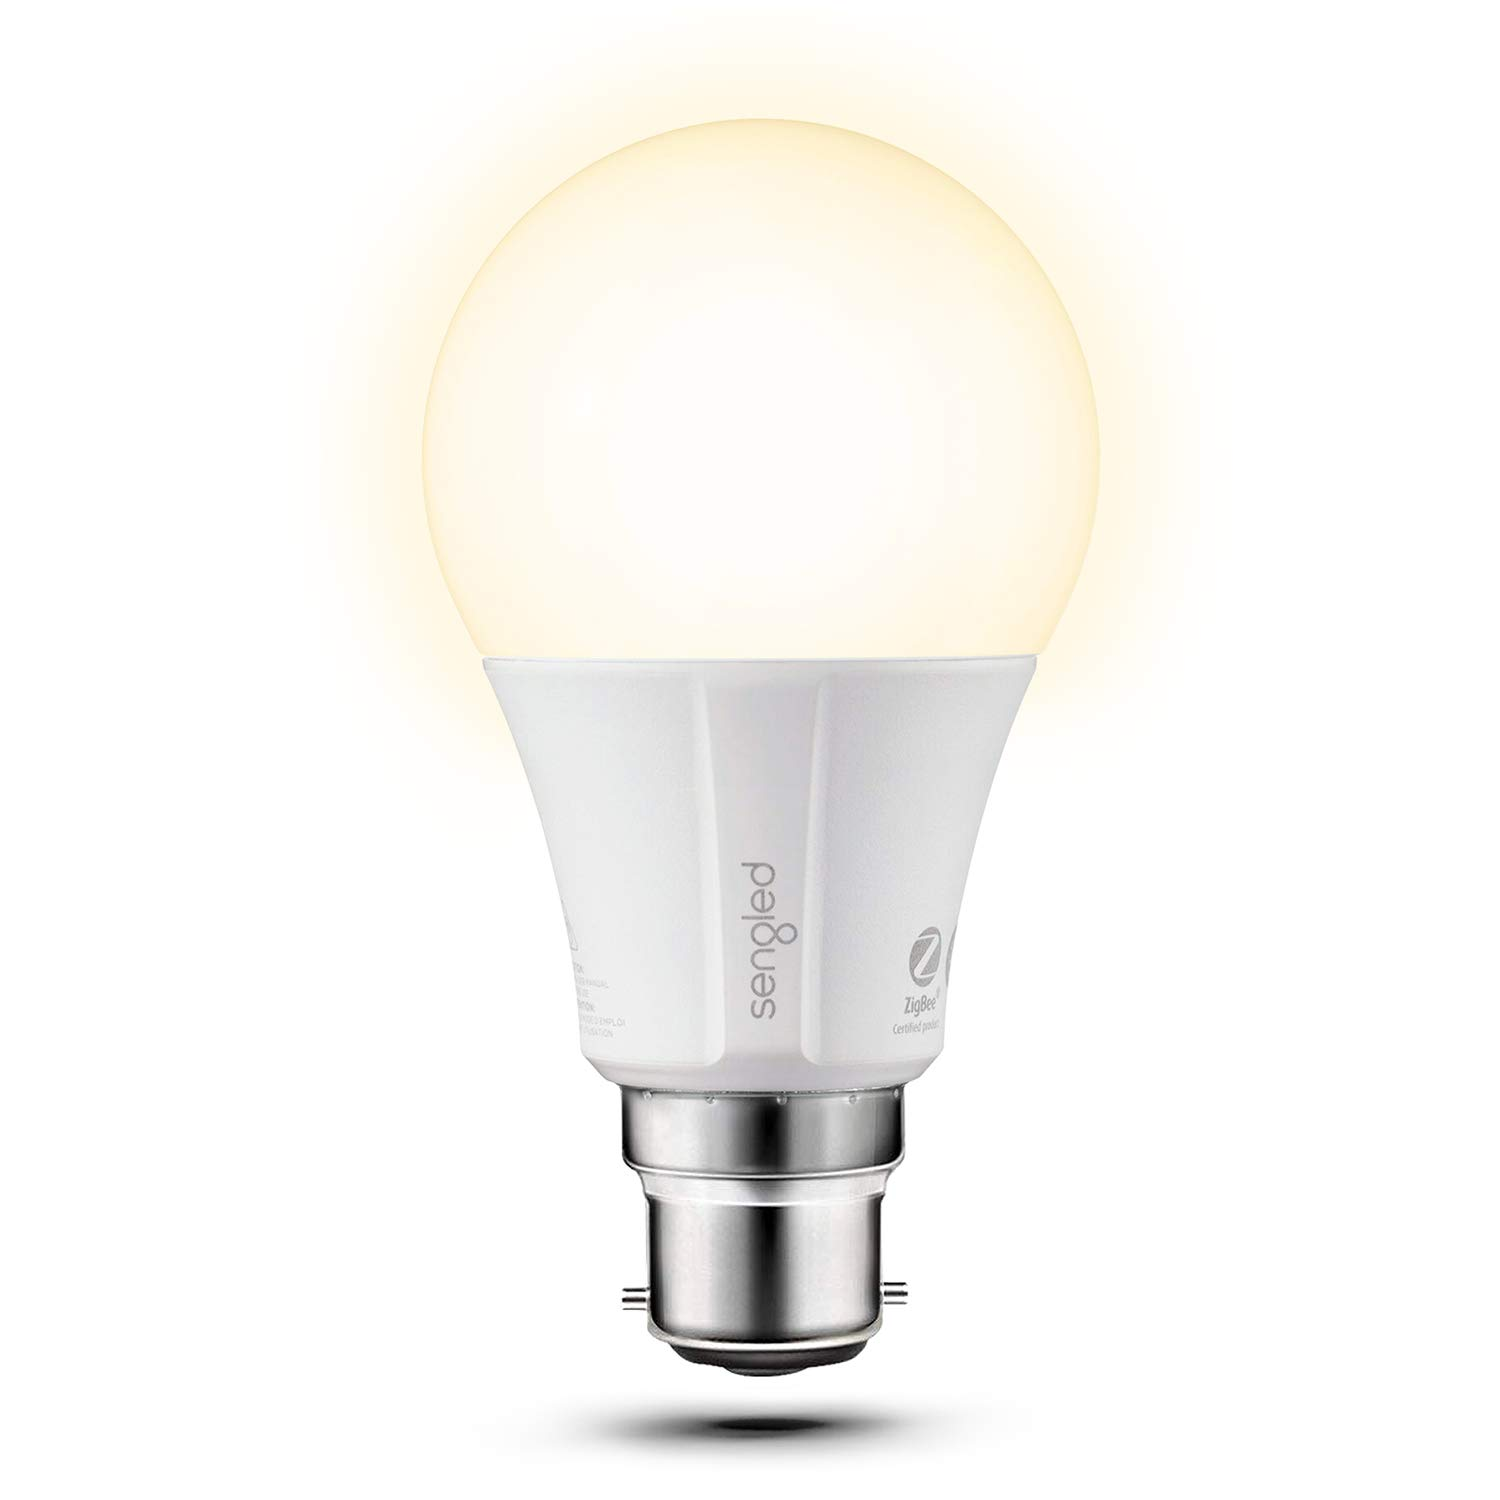 Sengled Element Classic Smart Bulb with B22 Base, Dimmable LED Light Soft White 2700K 60W Equivalent (Hub Required), Works with Alexa/Echo Plus/Google Assistant, 1 Pack E11-G33WA